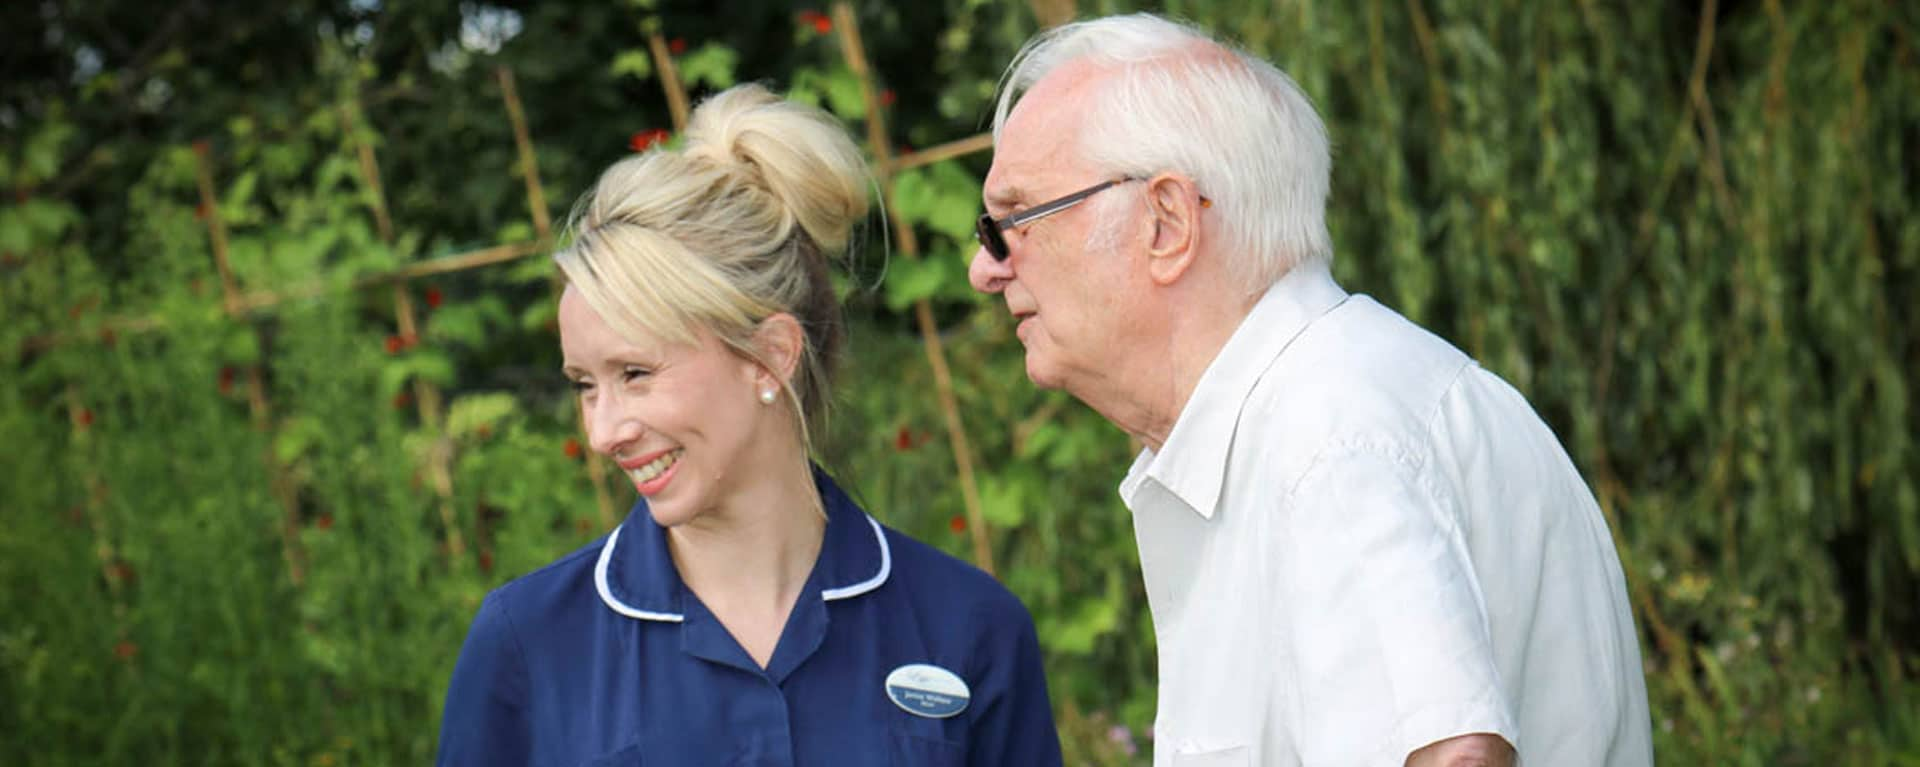 Nurse and resident having a chat in the garden